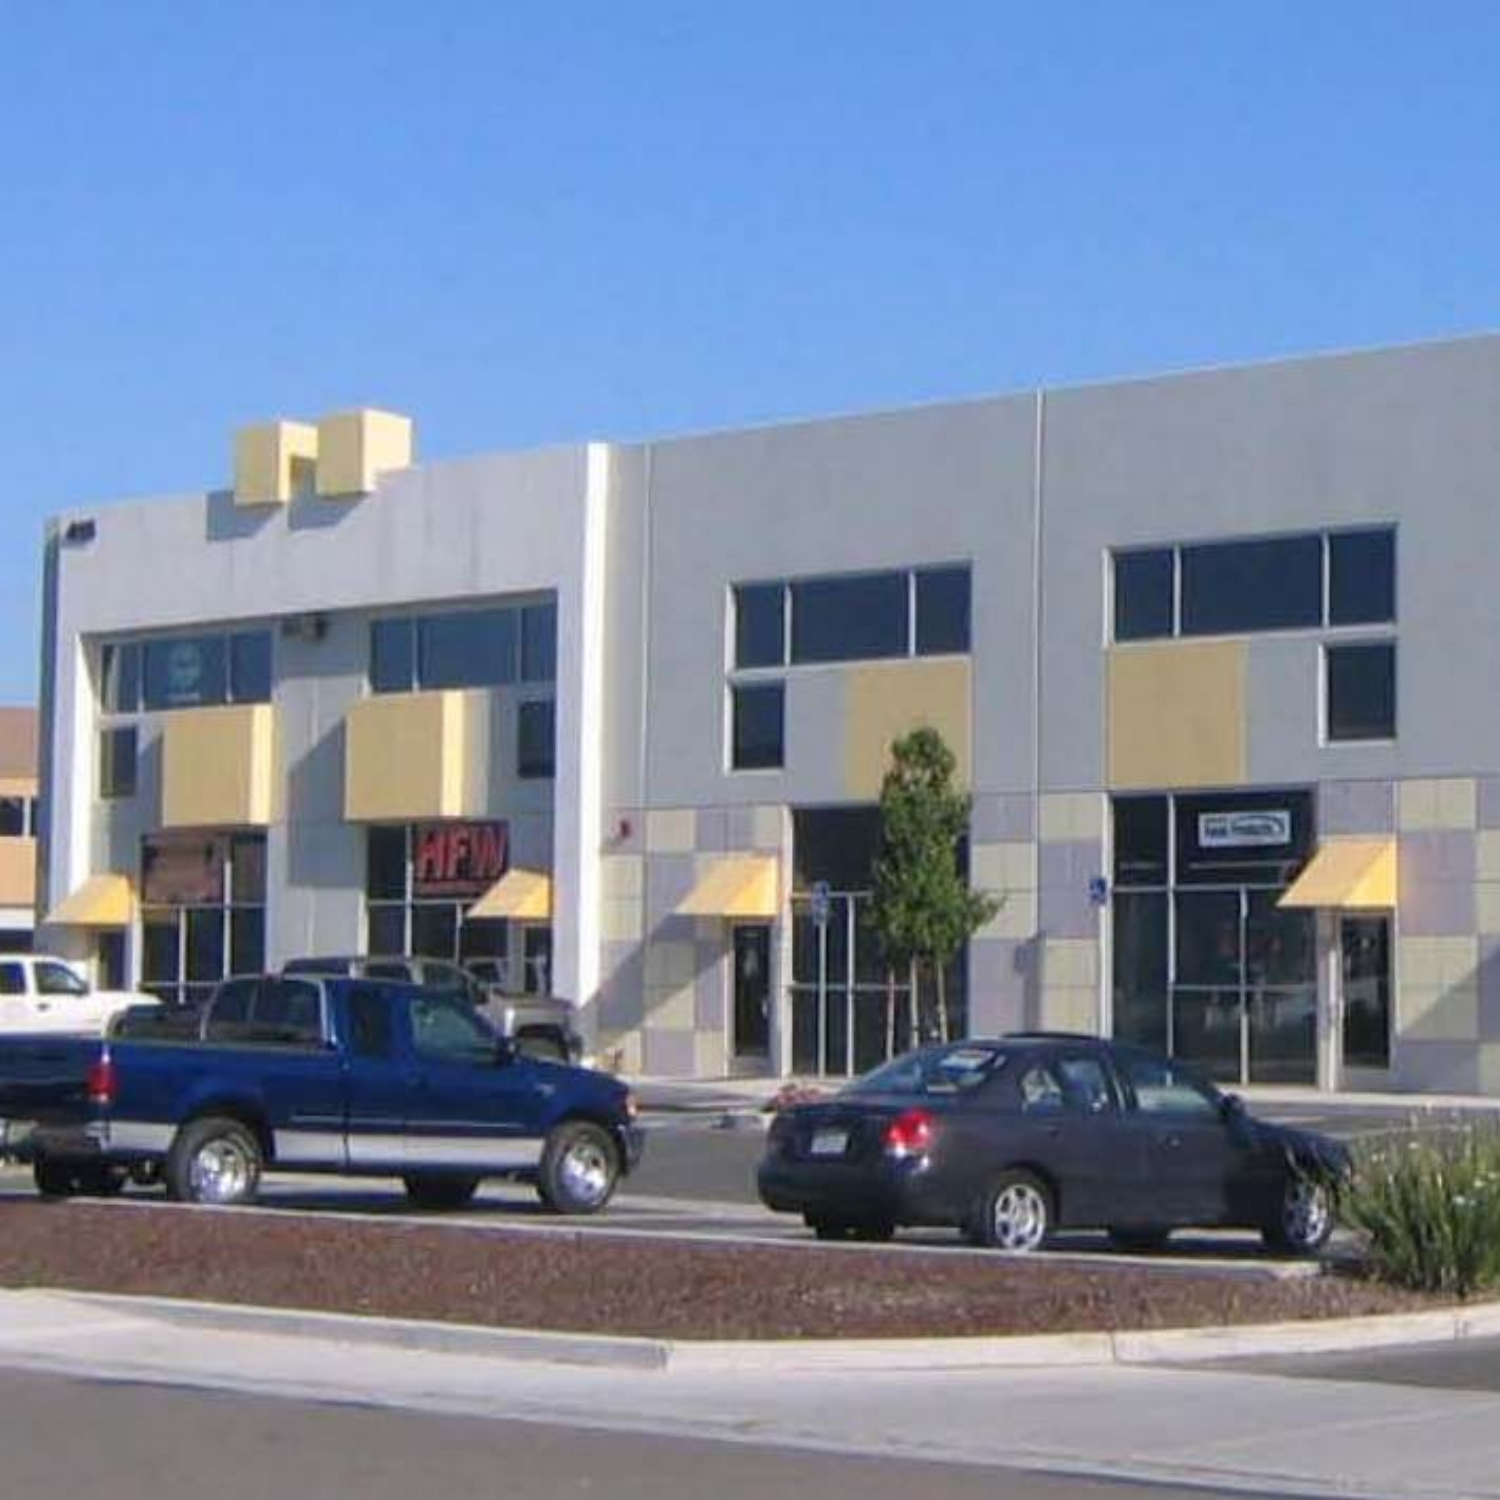 FLEX R&D   BRENTWOOD, CALIFORNIA